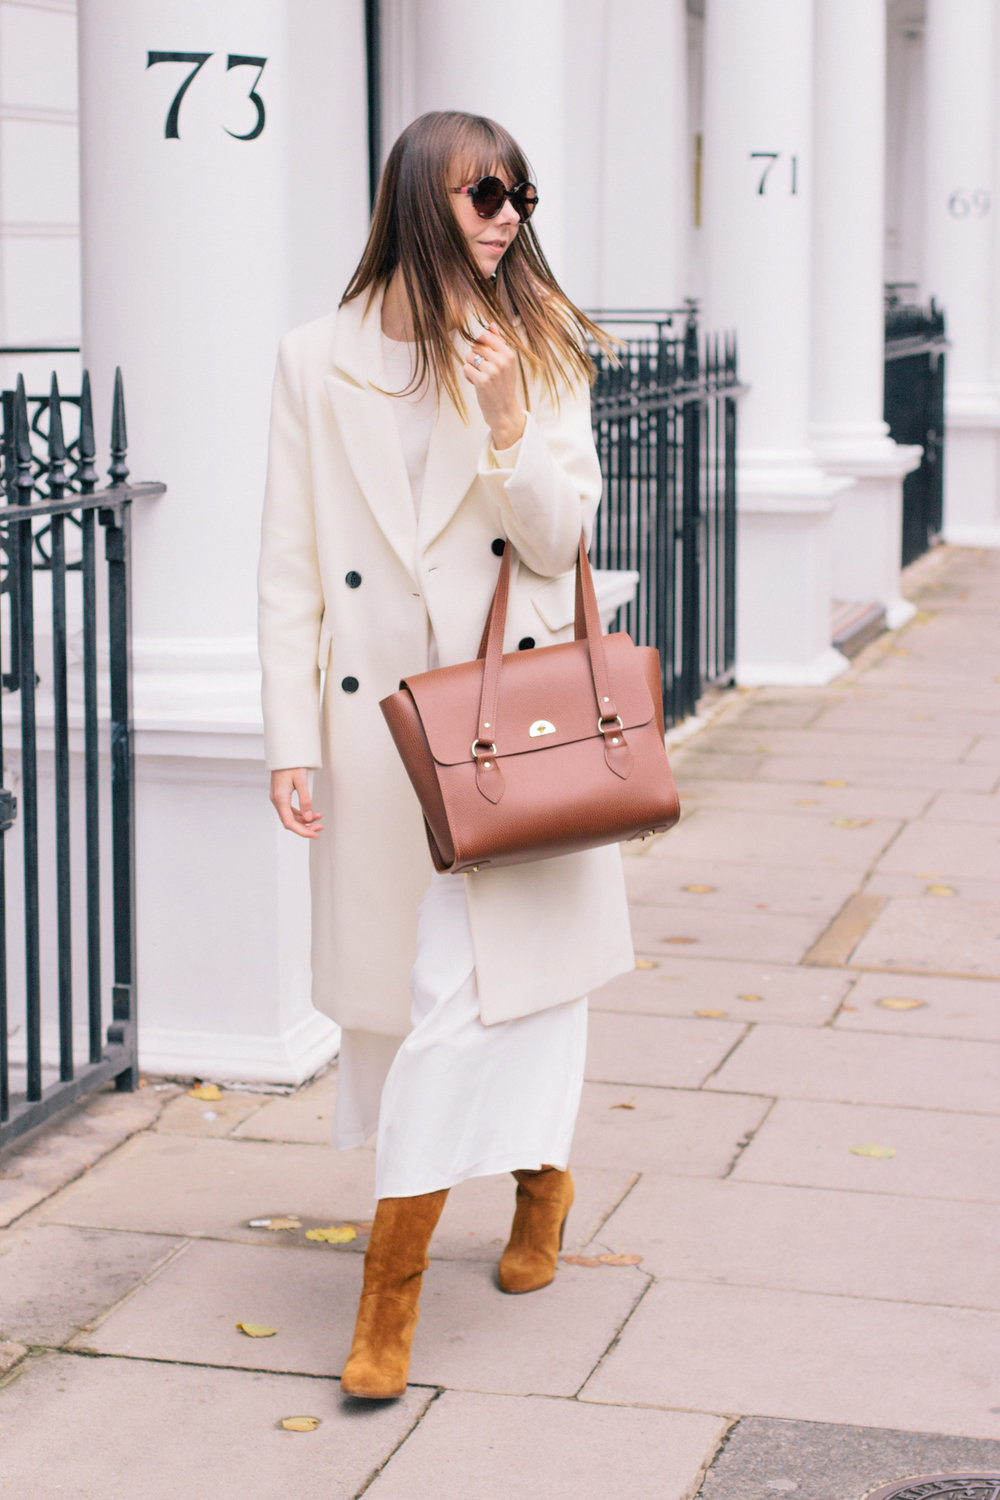 Cambridge Satchel Company Emily Bag Sundays and Somedays-9.jpg